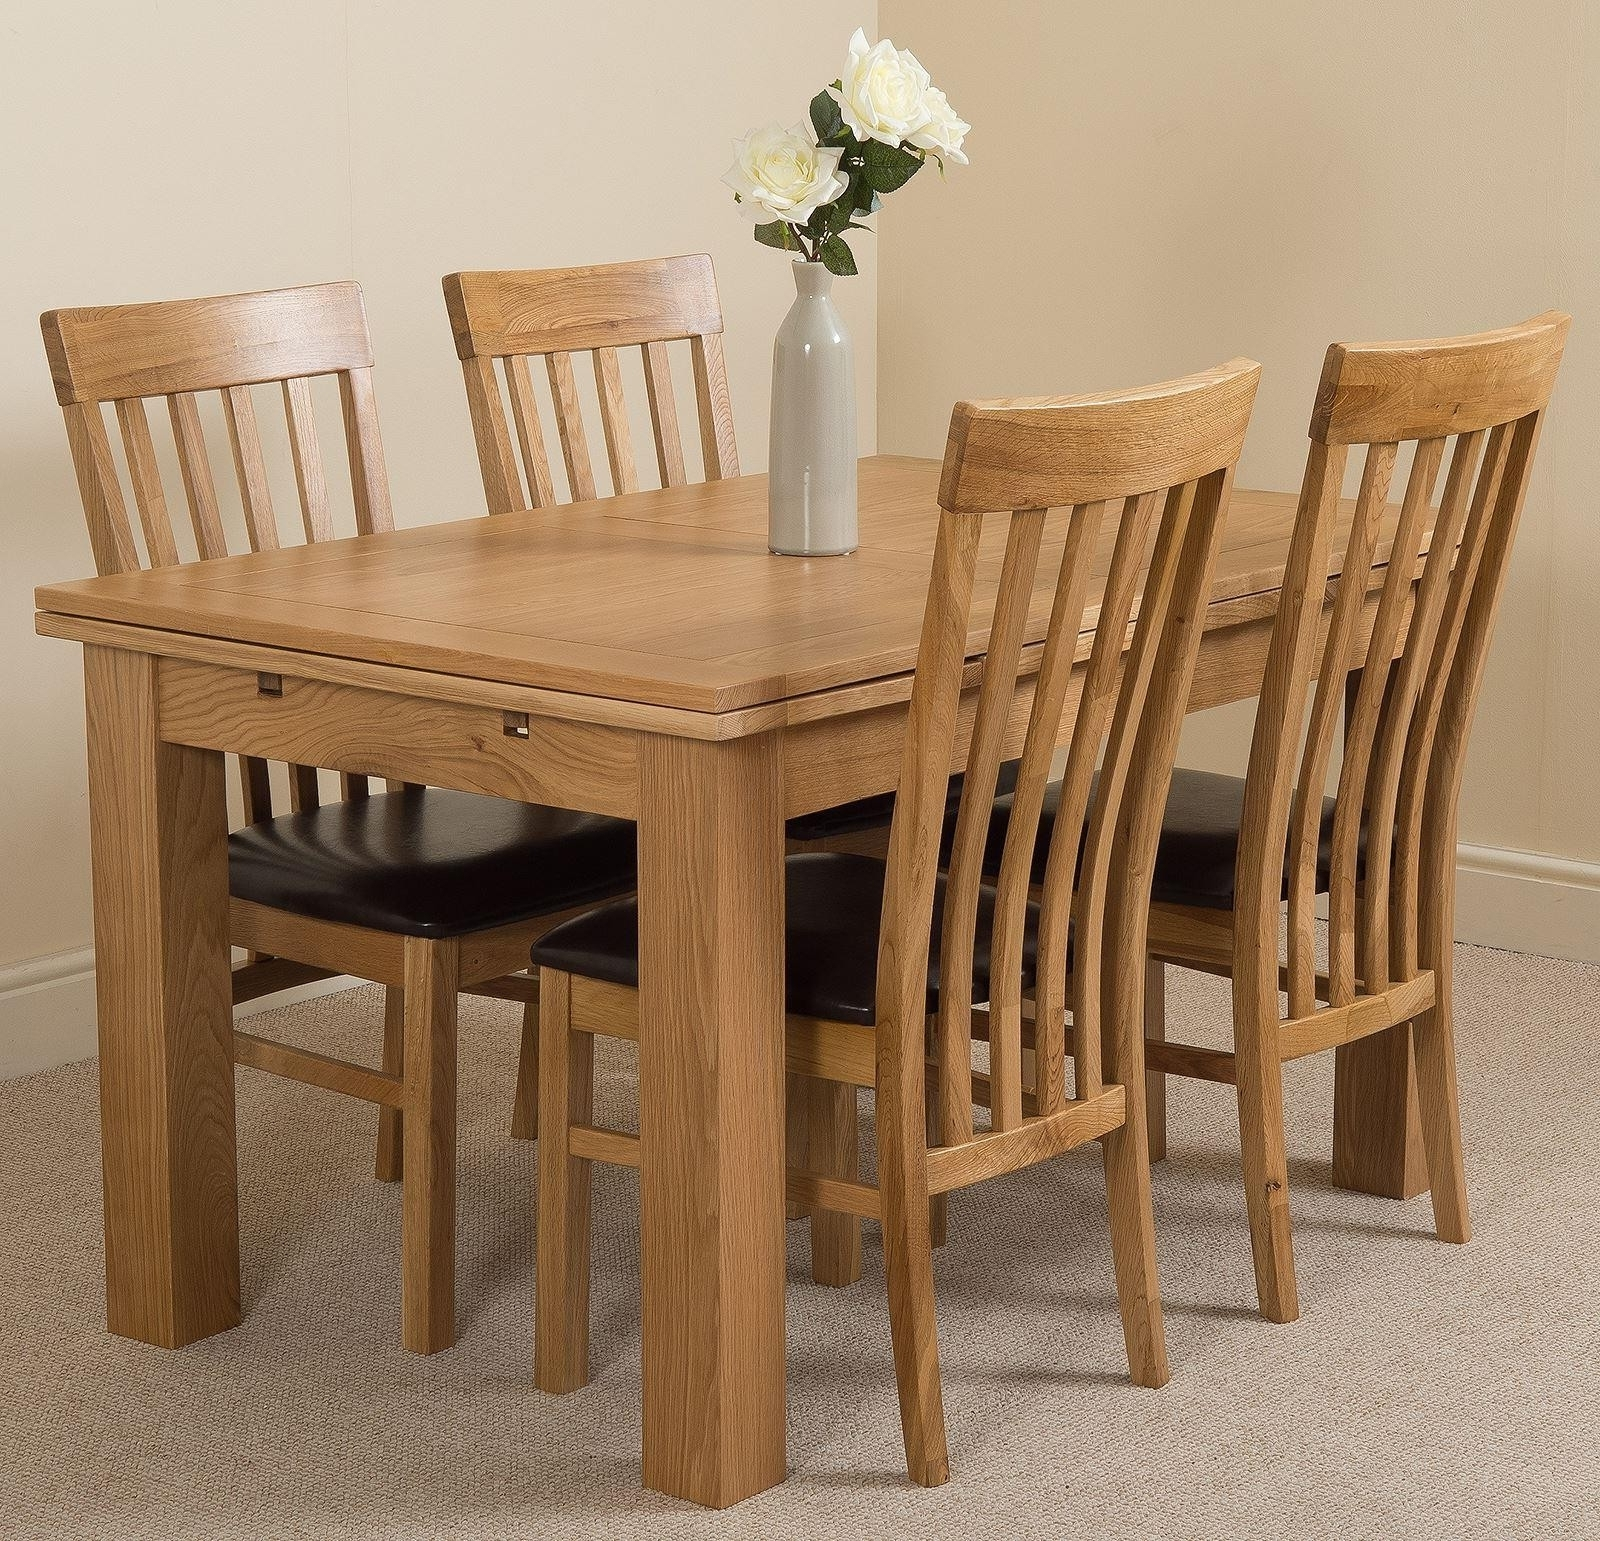 Extending Oak Dining Tables And Chairs With Regard To Popular Richmond Oak Small Dining Set 4 Harvard Chairs (Gallery 5 of 25)